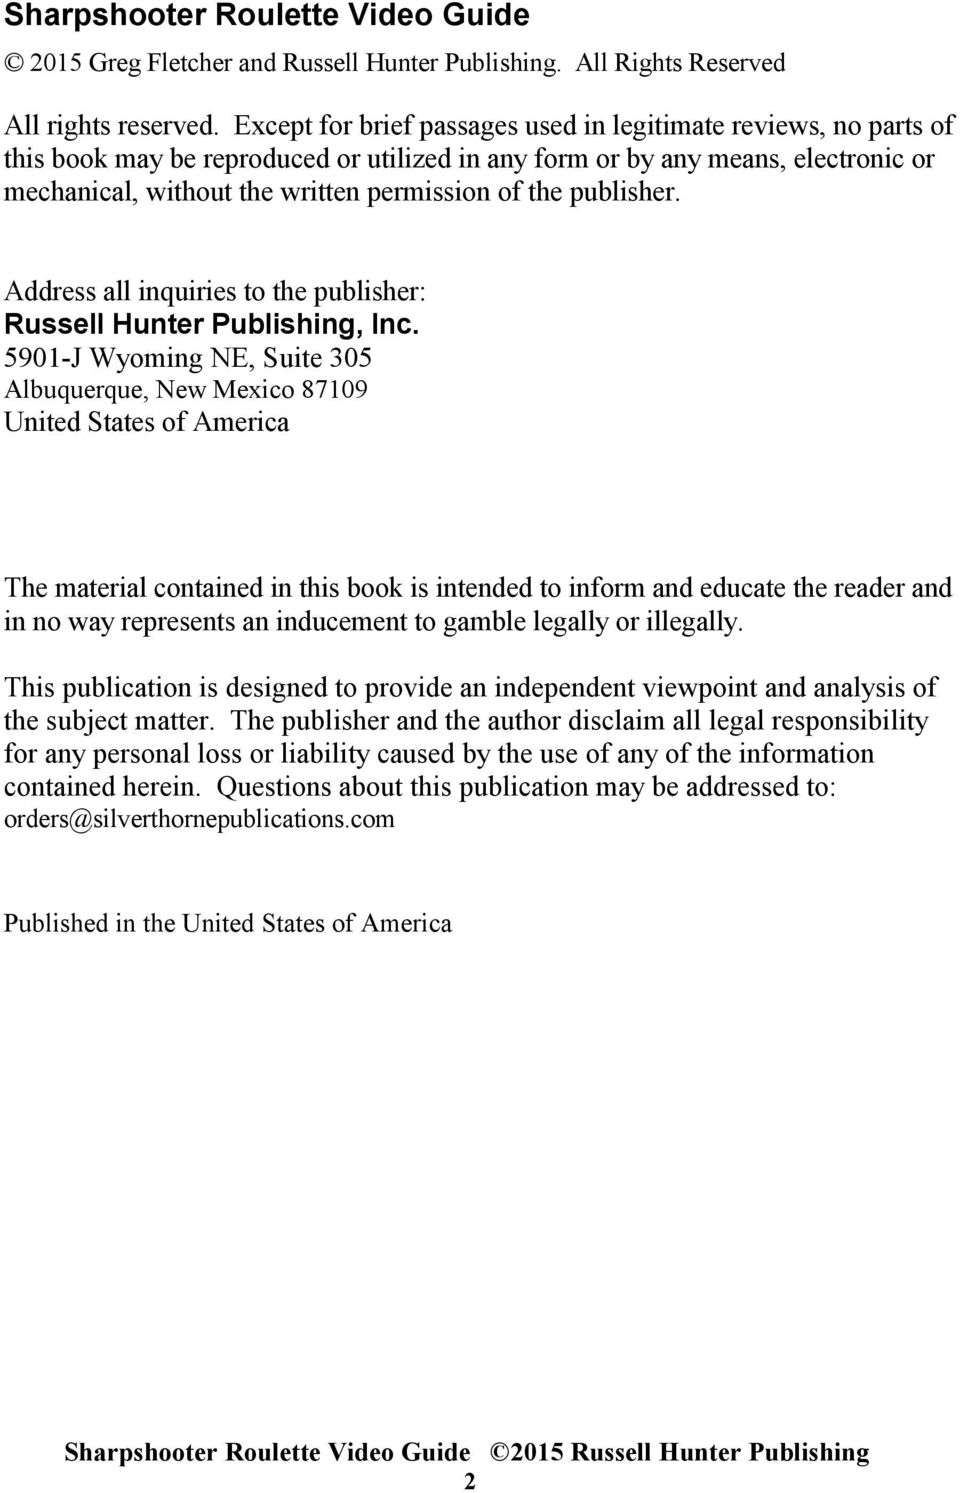 publisher. Address all inquiries to the publisher: Russell Hunter Publishing, Inc.